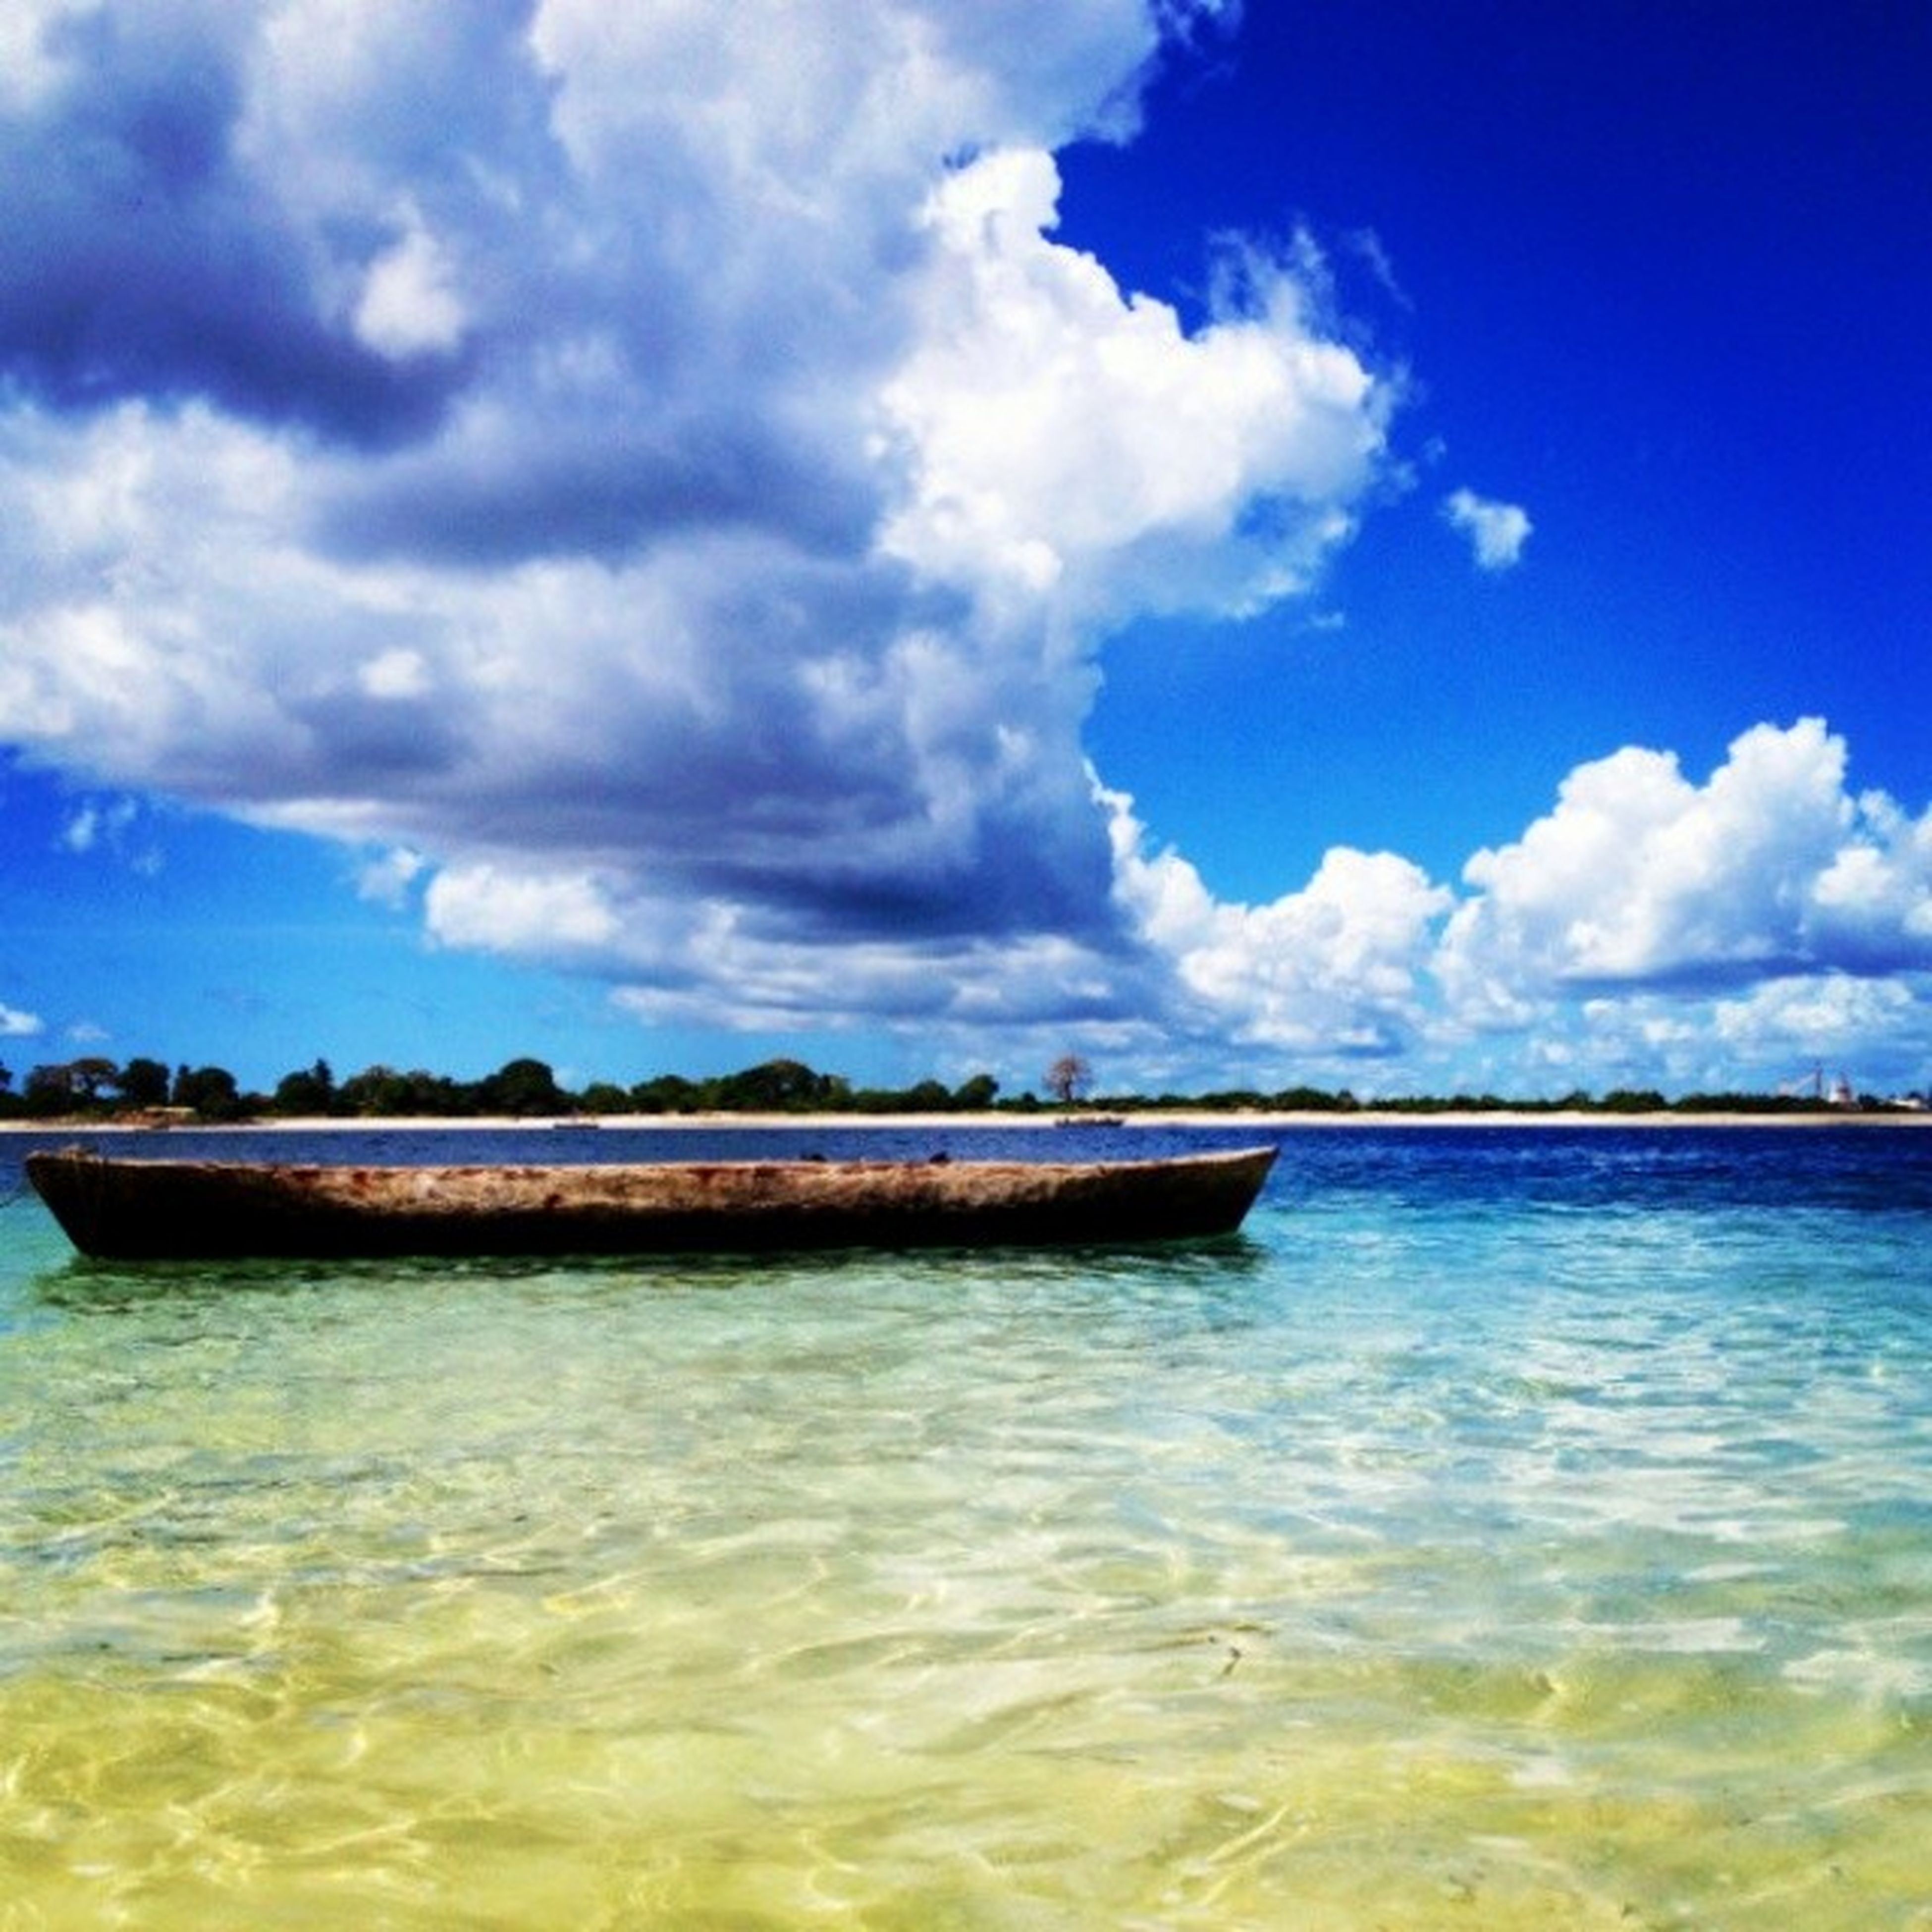 water, sky, waterfront, blue, cloud - sky, tranquil scene, sea, cloud, tranquility, nautical vessel, scenics, transportation, rippled, beauty in nature, boat, nature, mode of transport, cloudy, reflection, lake